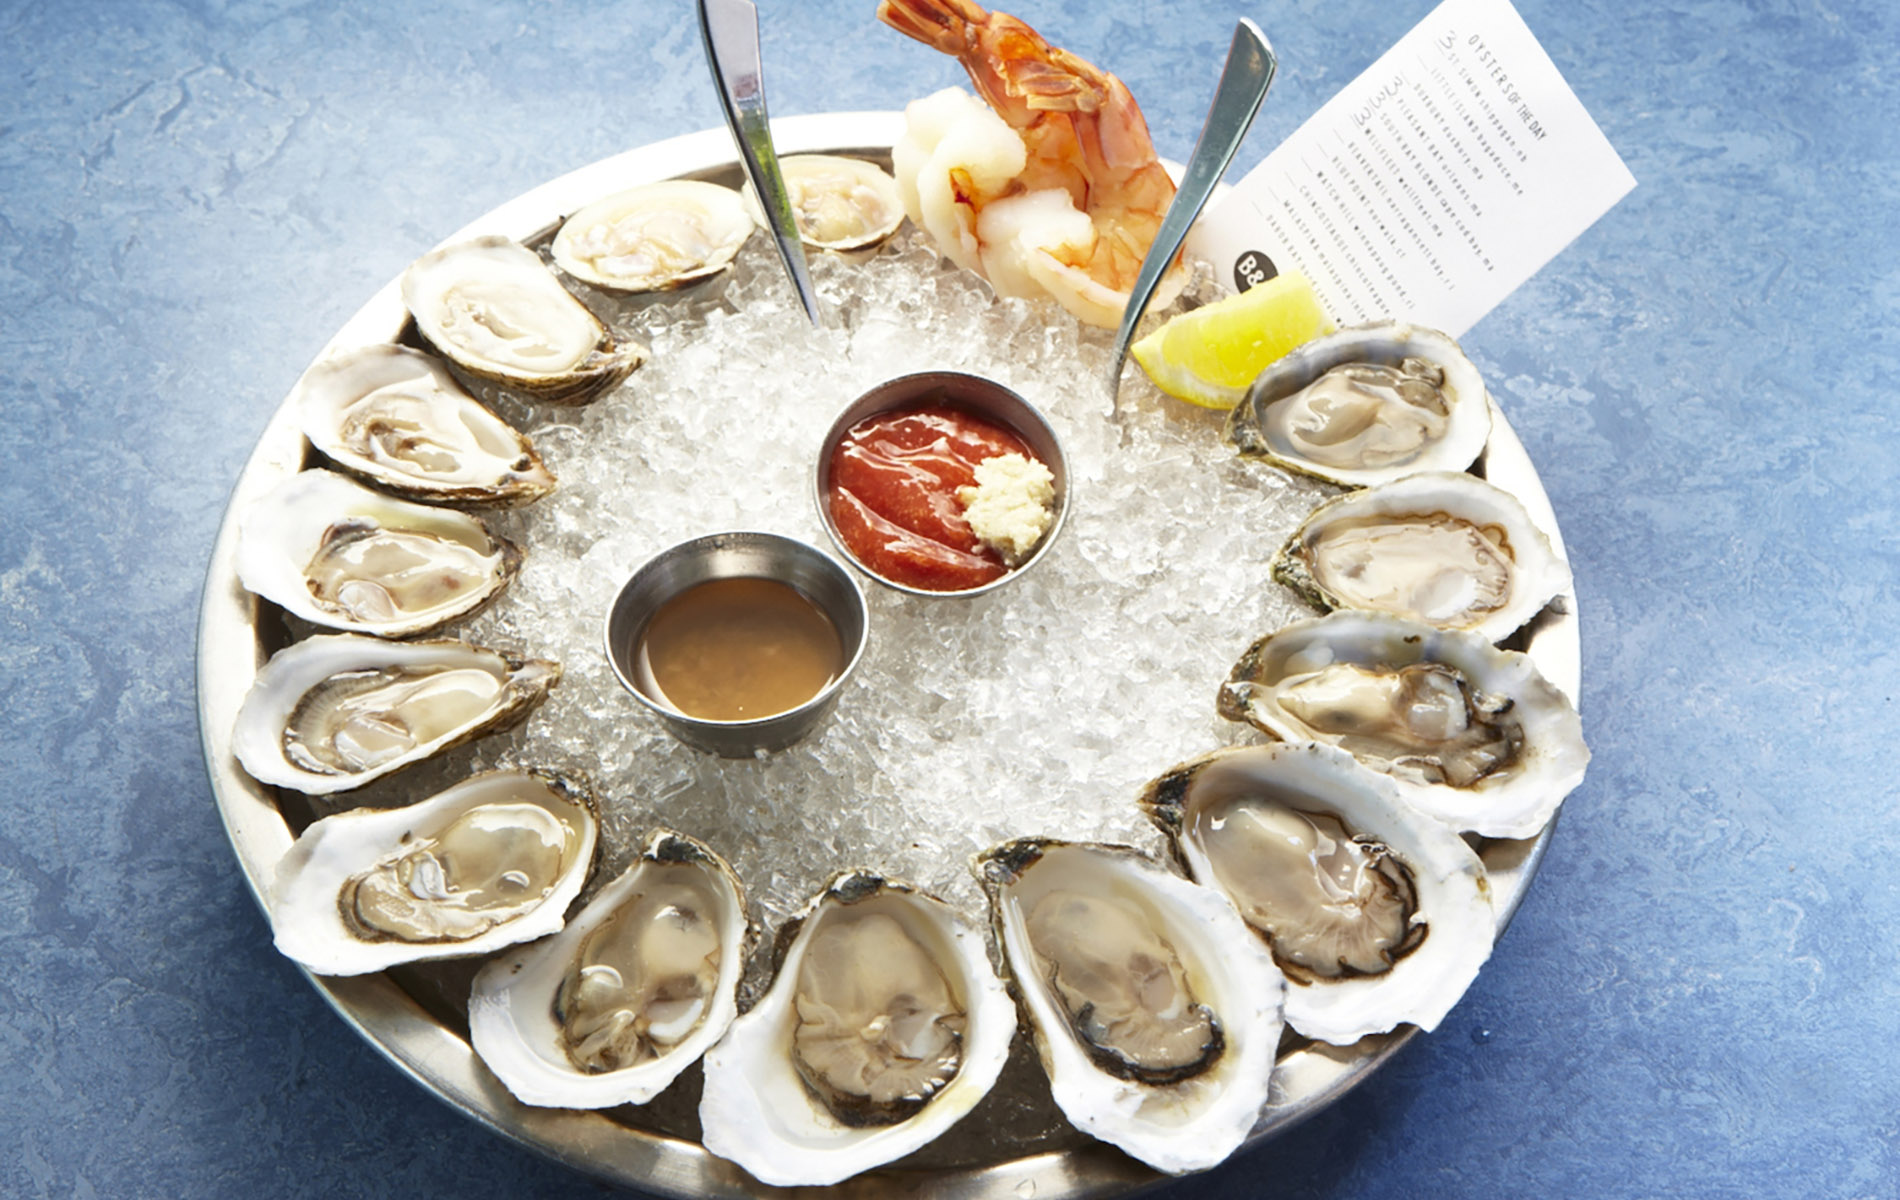 Blue background with oysters on ice